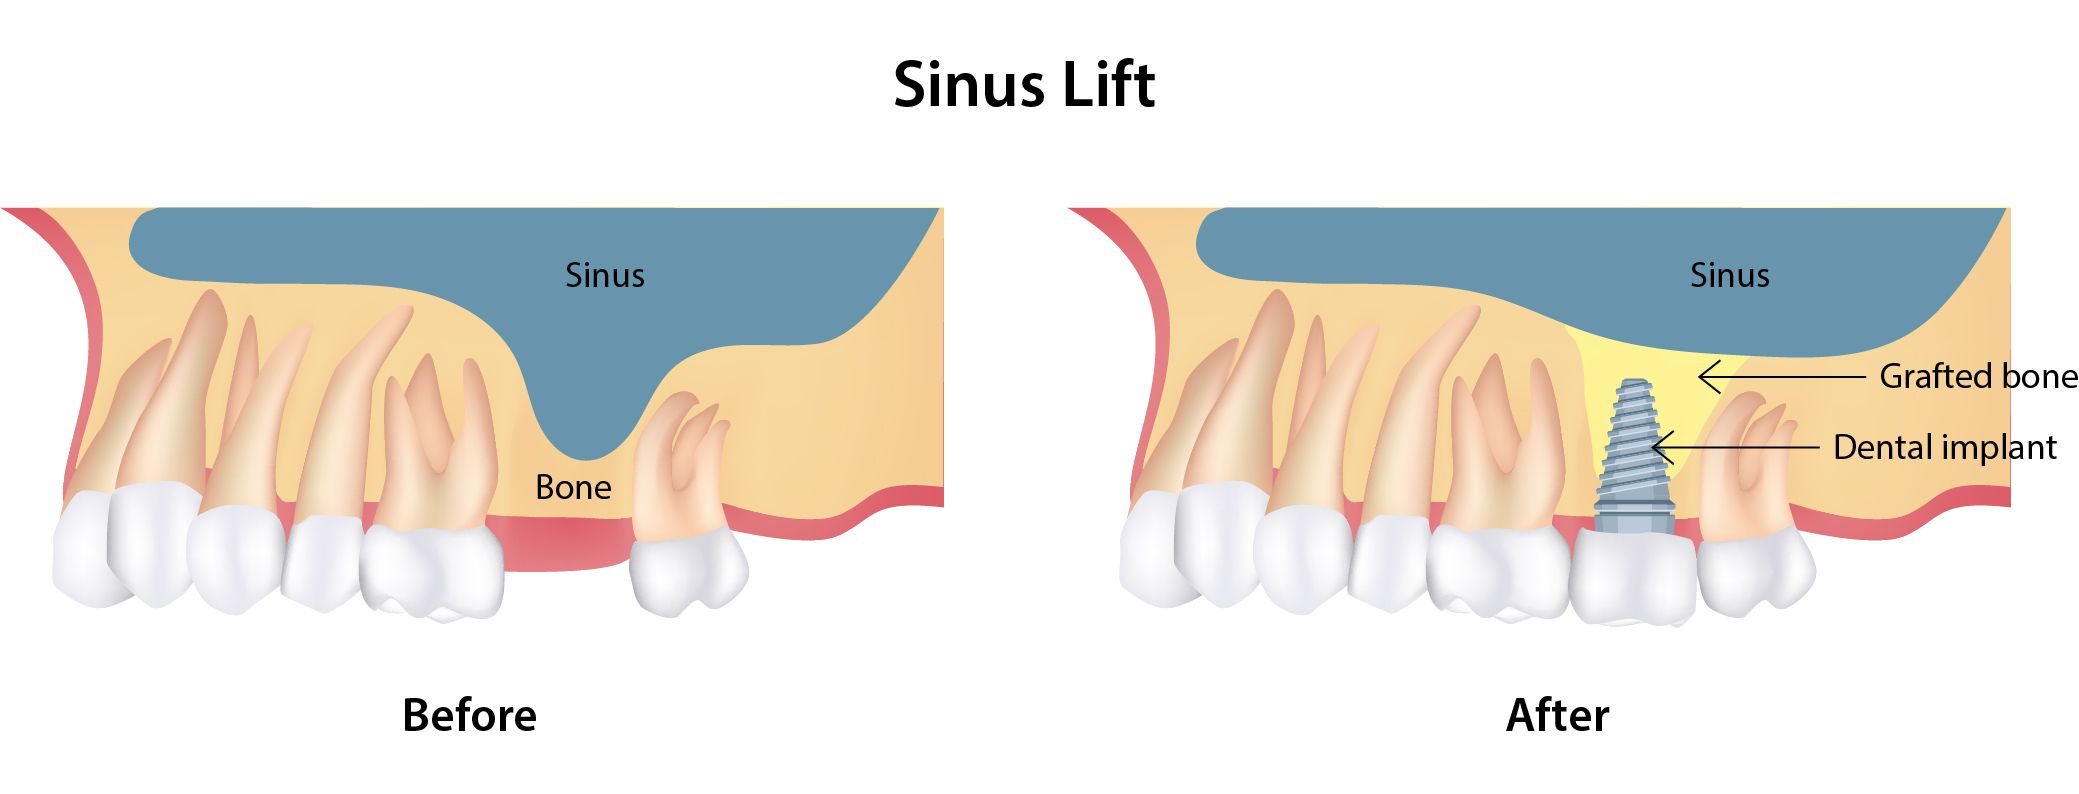 illustration of sinus lift before and after